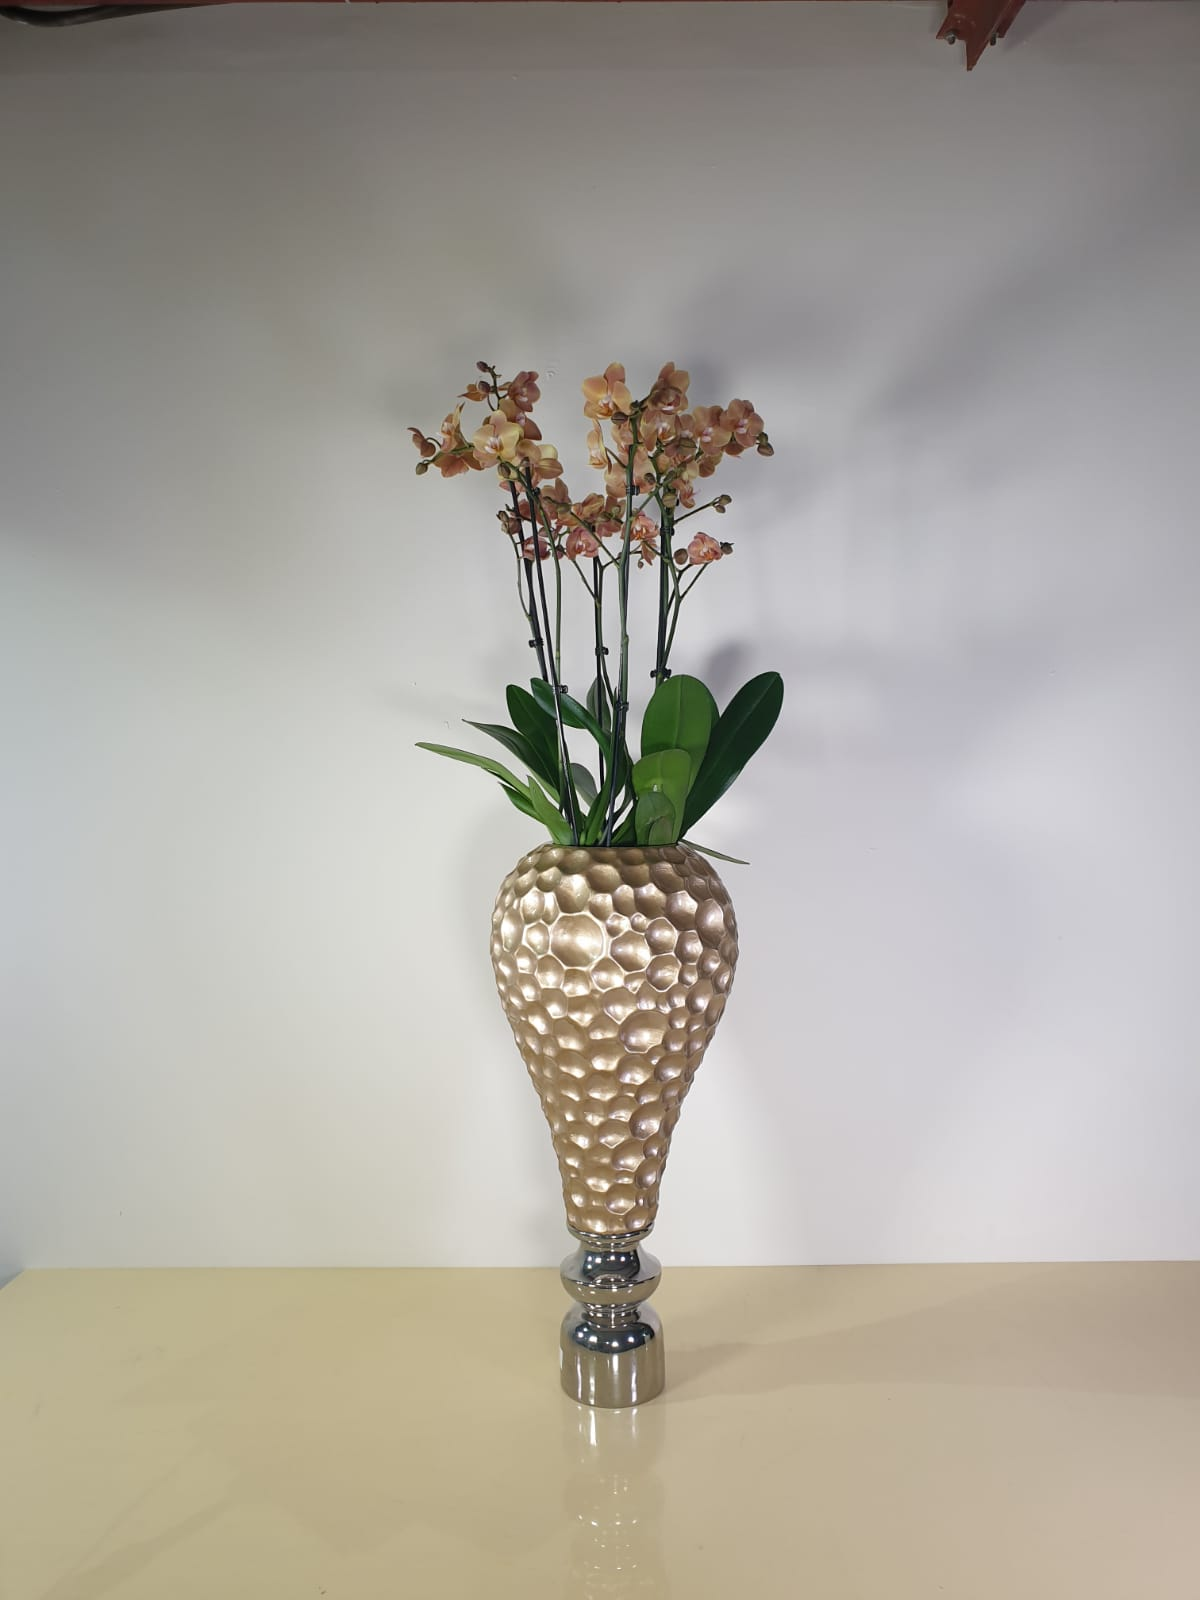 Orchid Flowers in a Vase - Peach Premium Collection